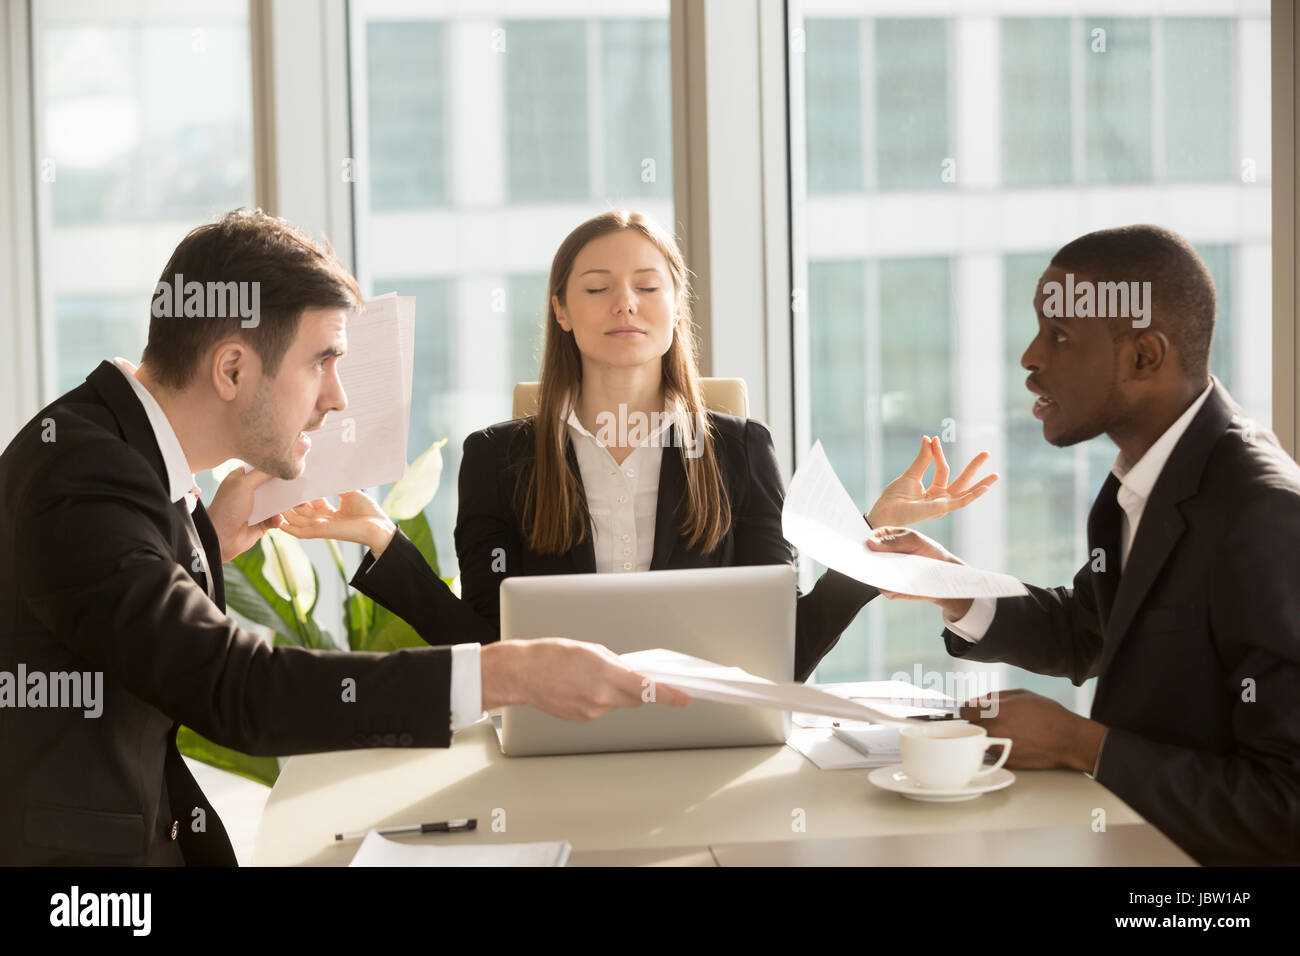 Attractive businesswoman enjoys meditating during meeting, sitting at office desk with eyes closed near arguing - Stock Image